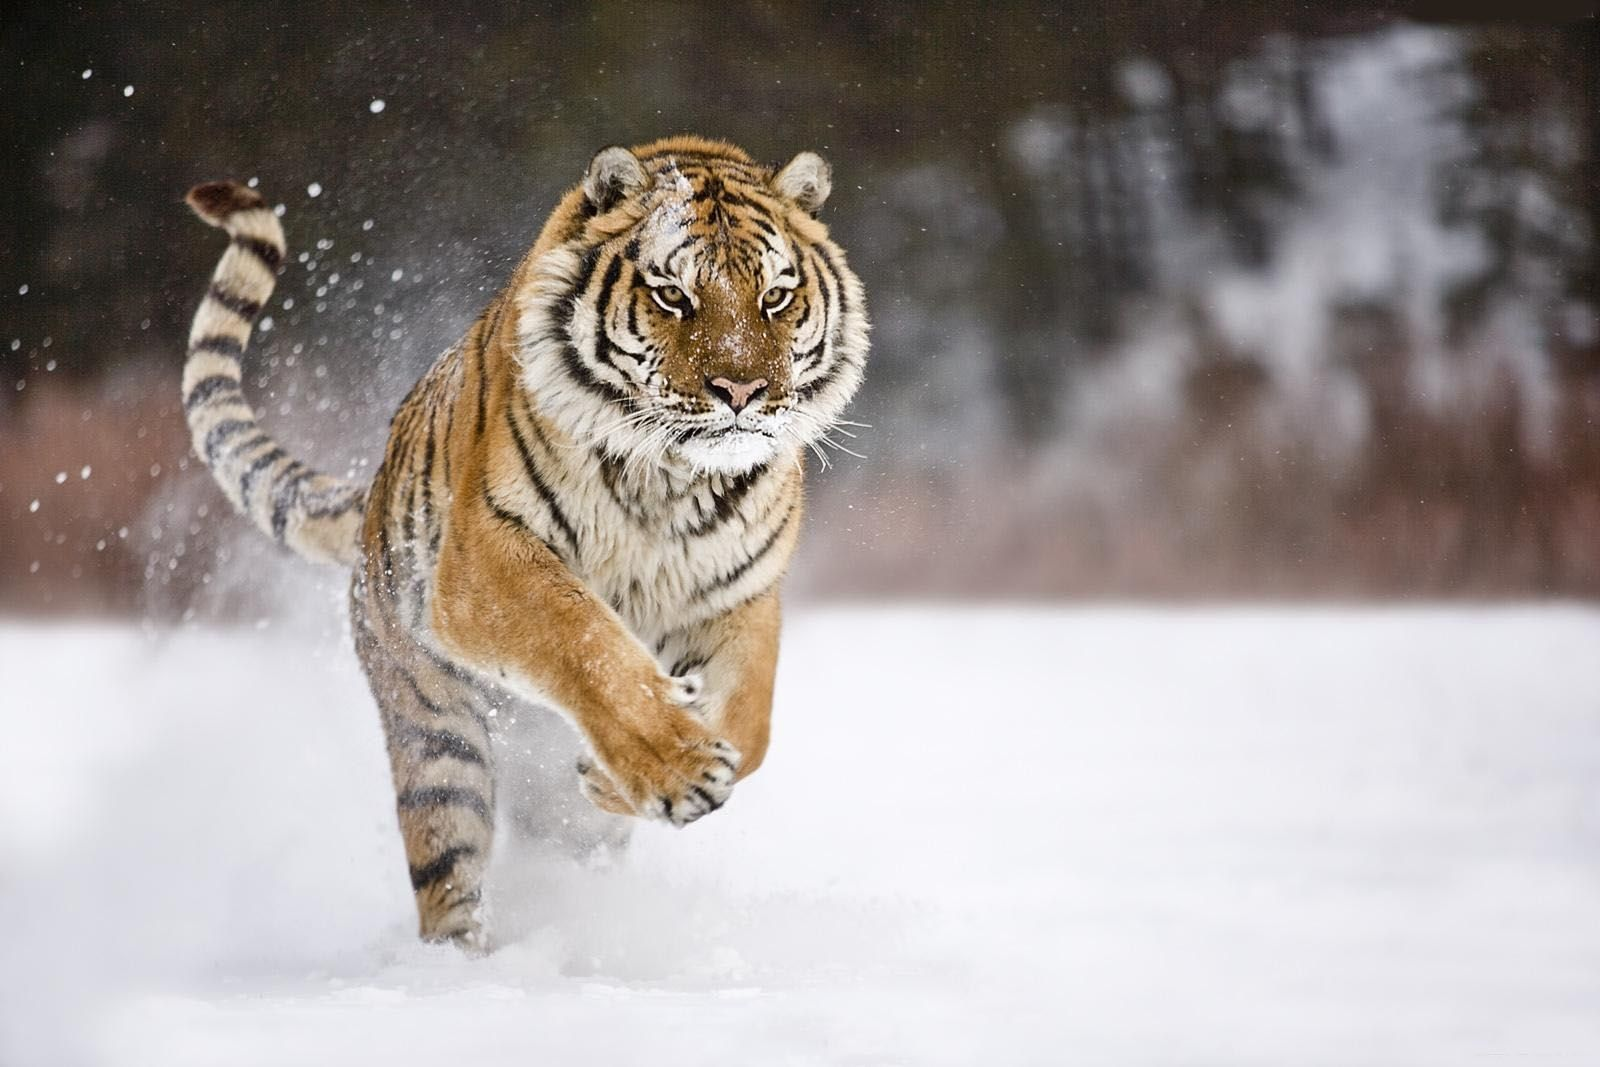 Running Tigers Fresh HD Wallpapers 2013 | Top hd animals wallpapers